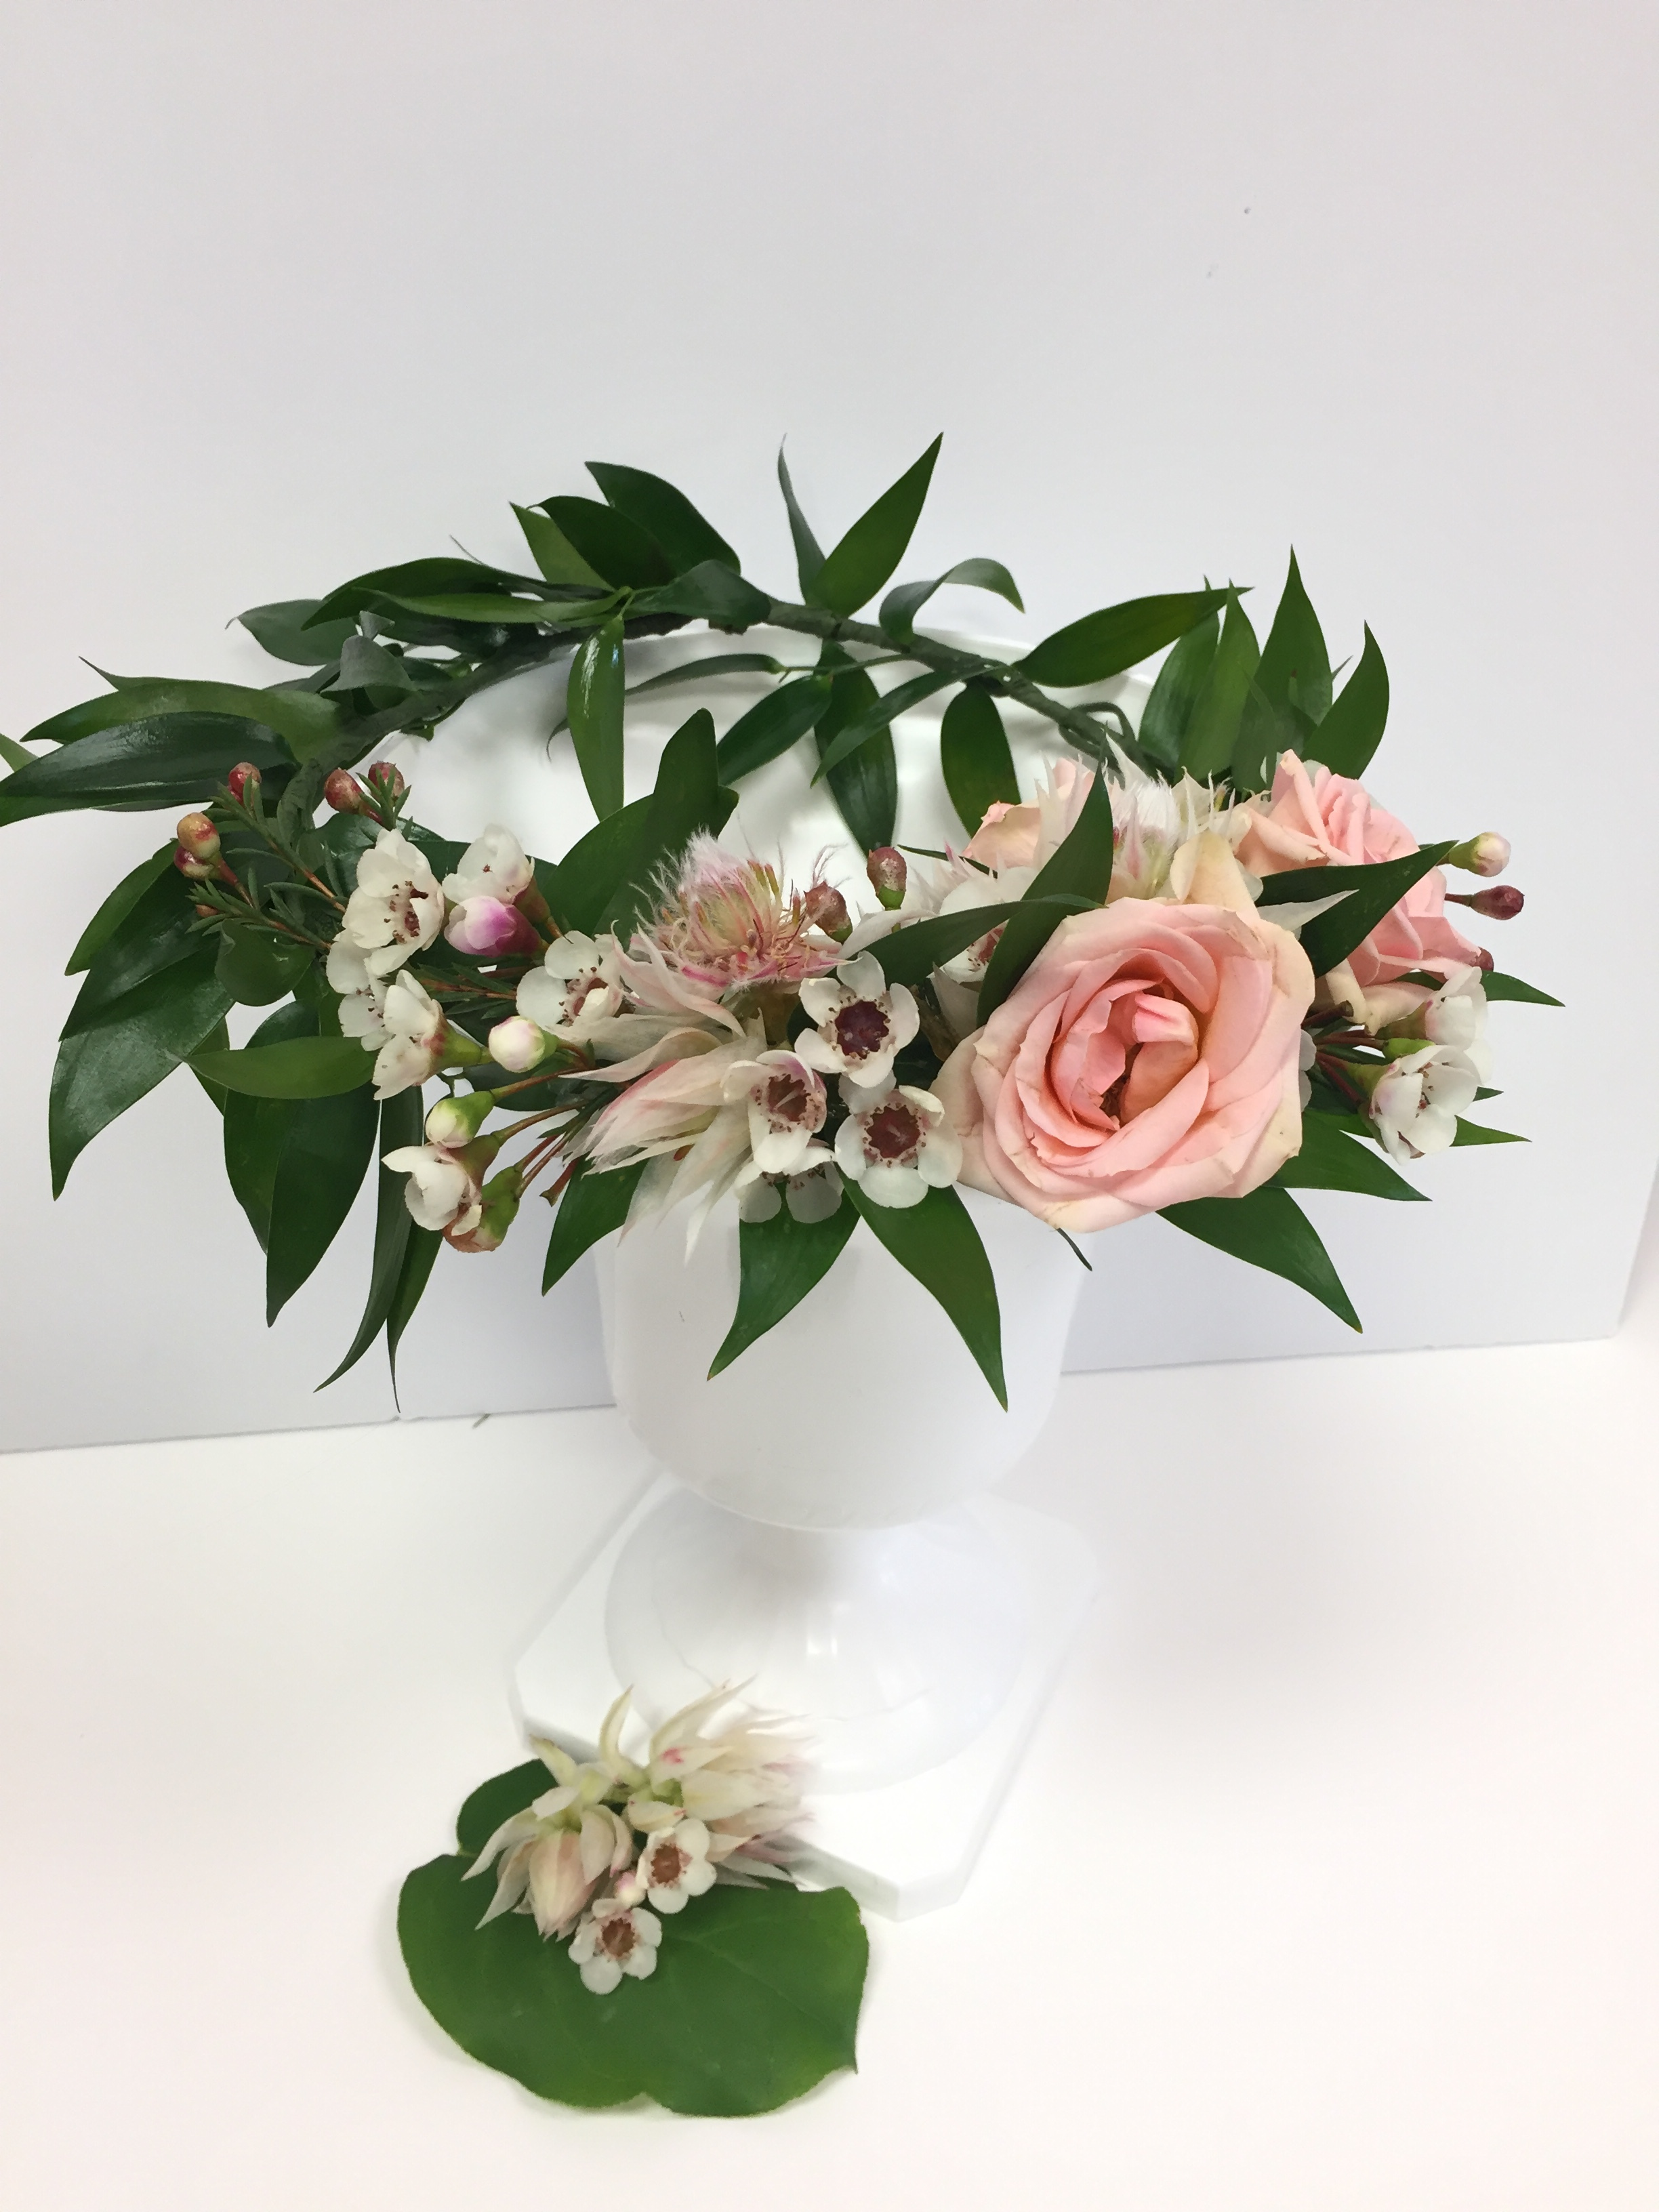 'Sweet Rose' crown : Spray roses and floral accents on adjustable wire crown with green leaves.